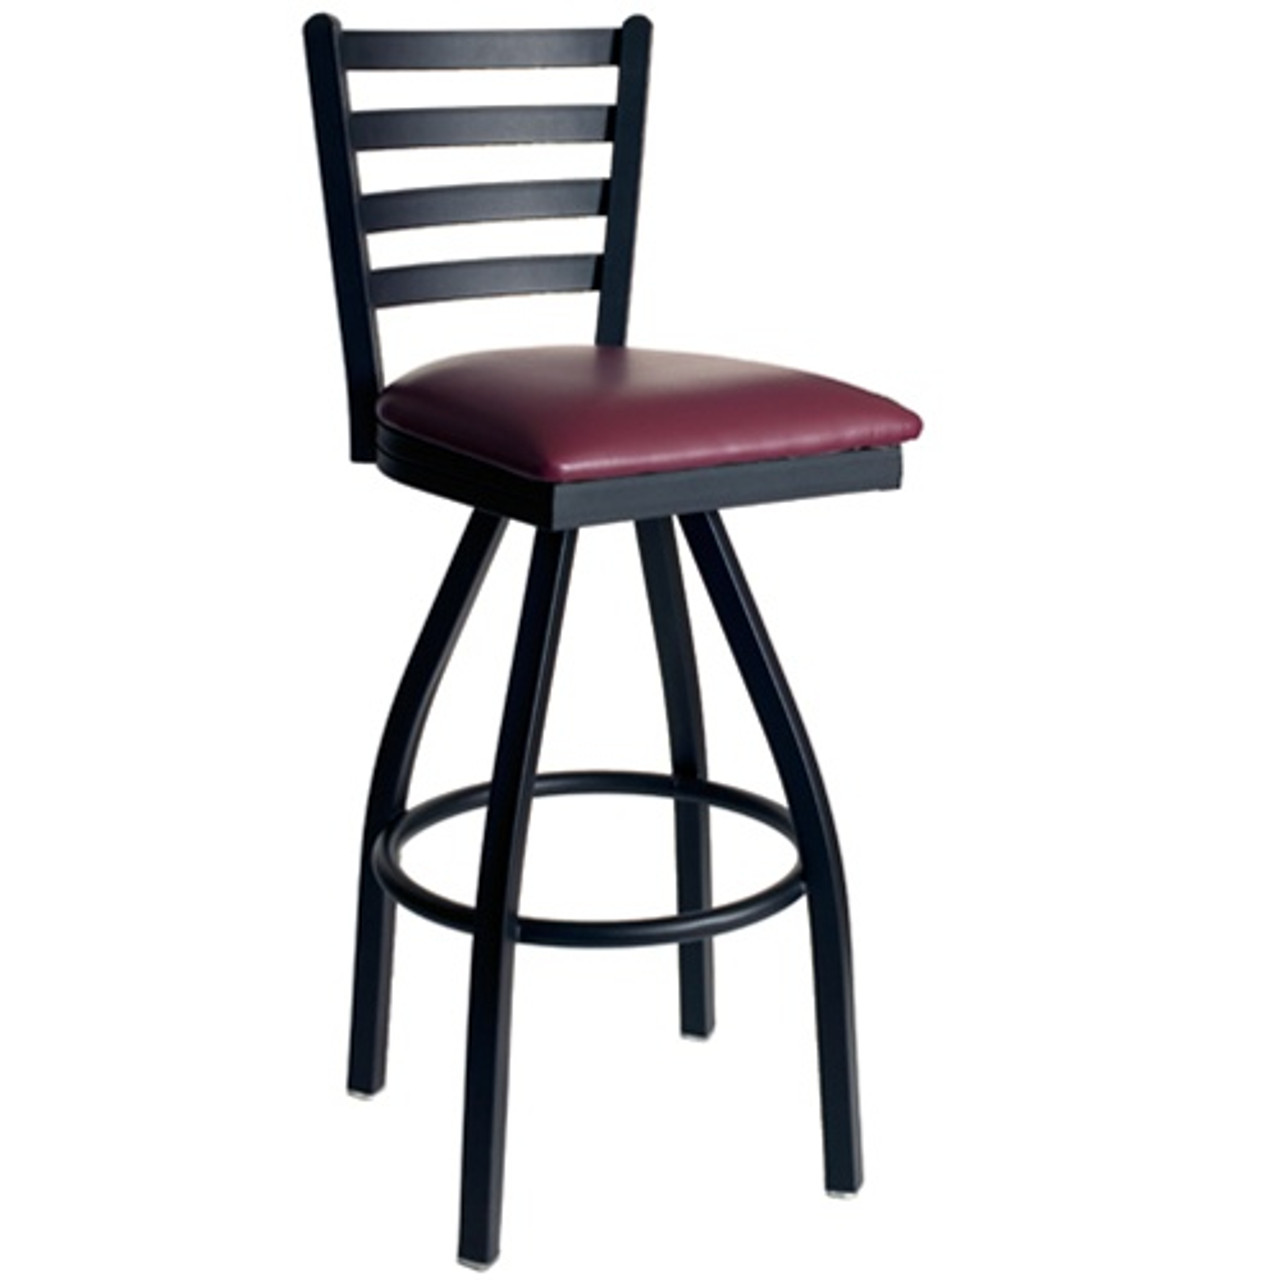 Picture of: Bfm Seating Lima Metal Ladder Back Restaurant Swivel Bar Stool With Padded Seat 2160s Sbv Pub Bar Stools Commercial Bar Stools